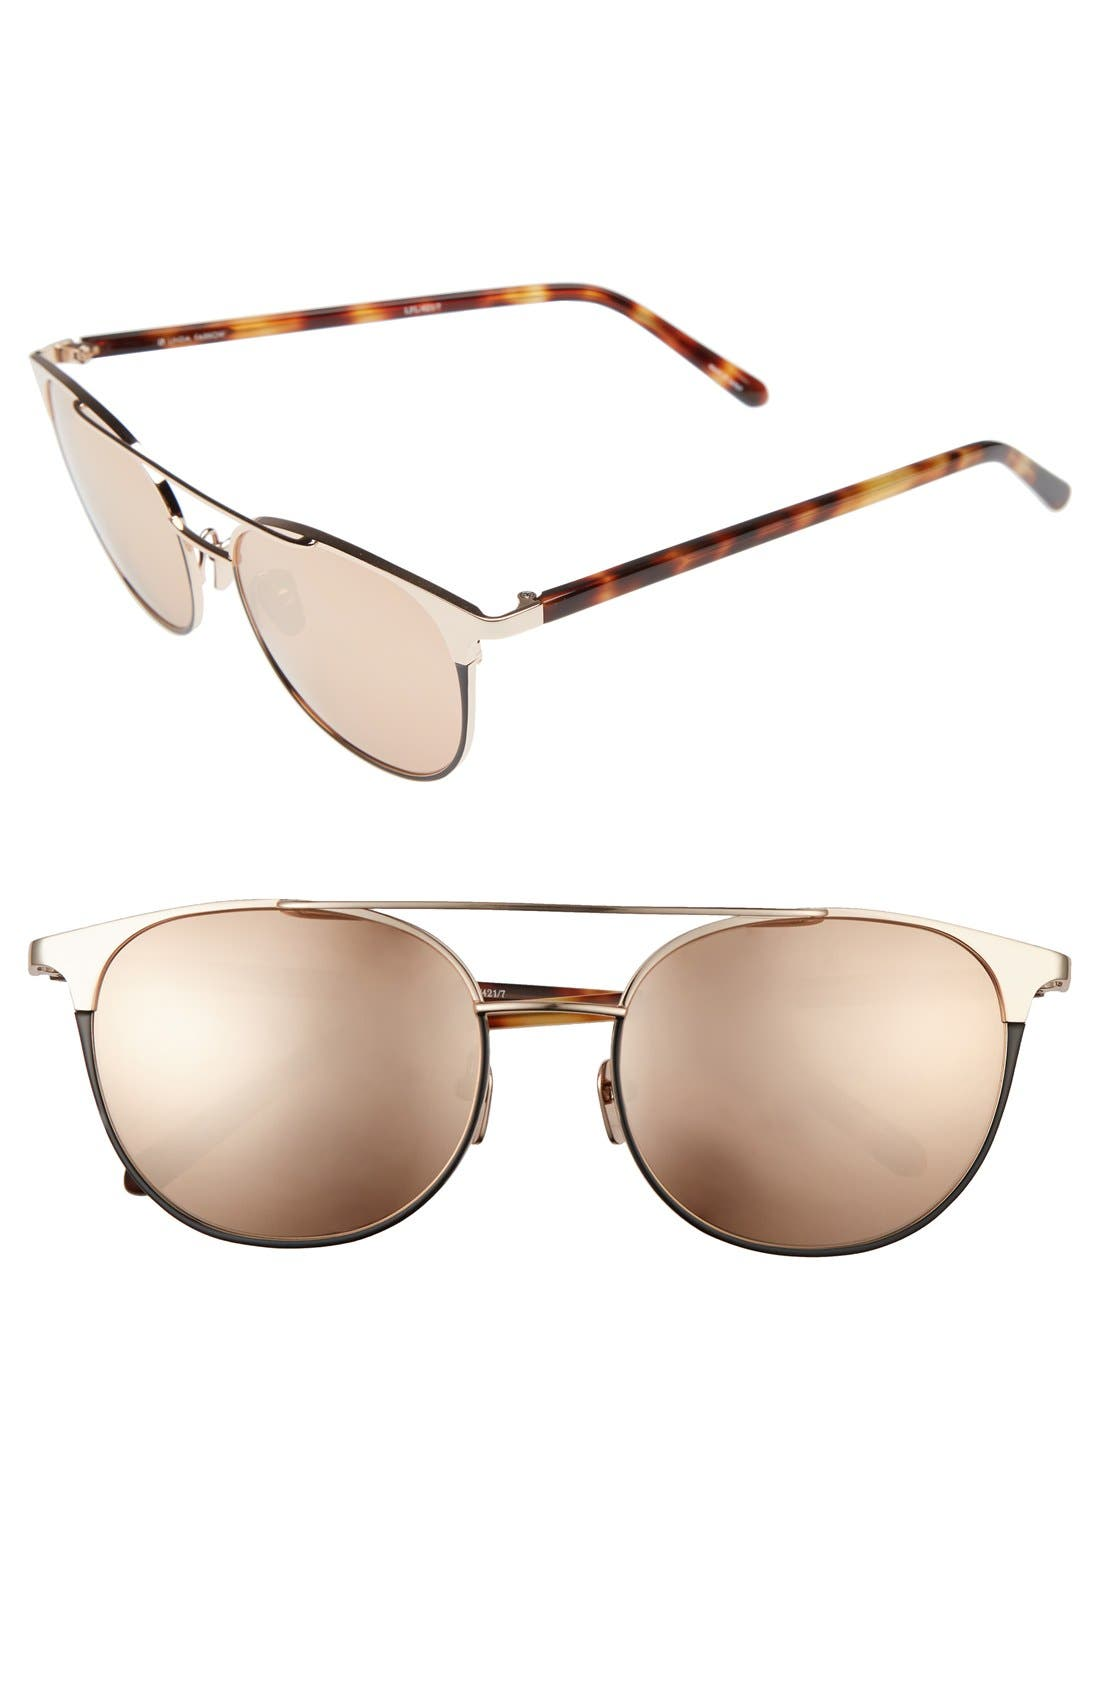 LINDA FARROW 54mm Gold Plated Aviator Sunglasses